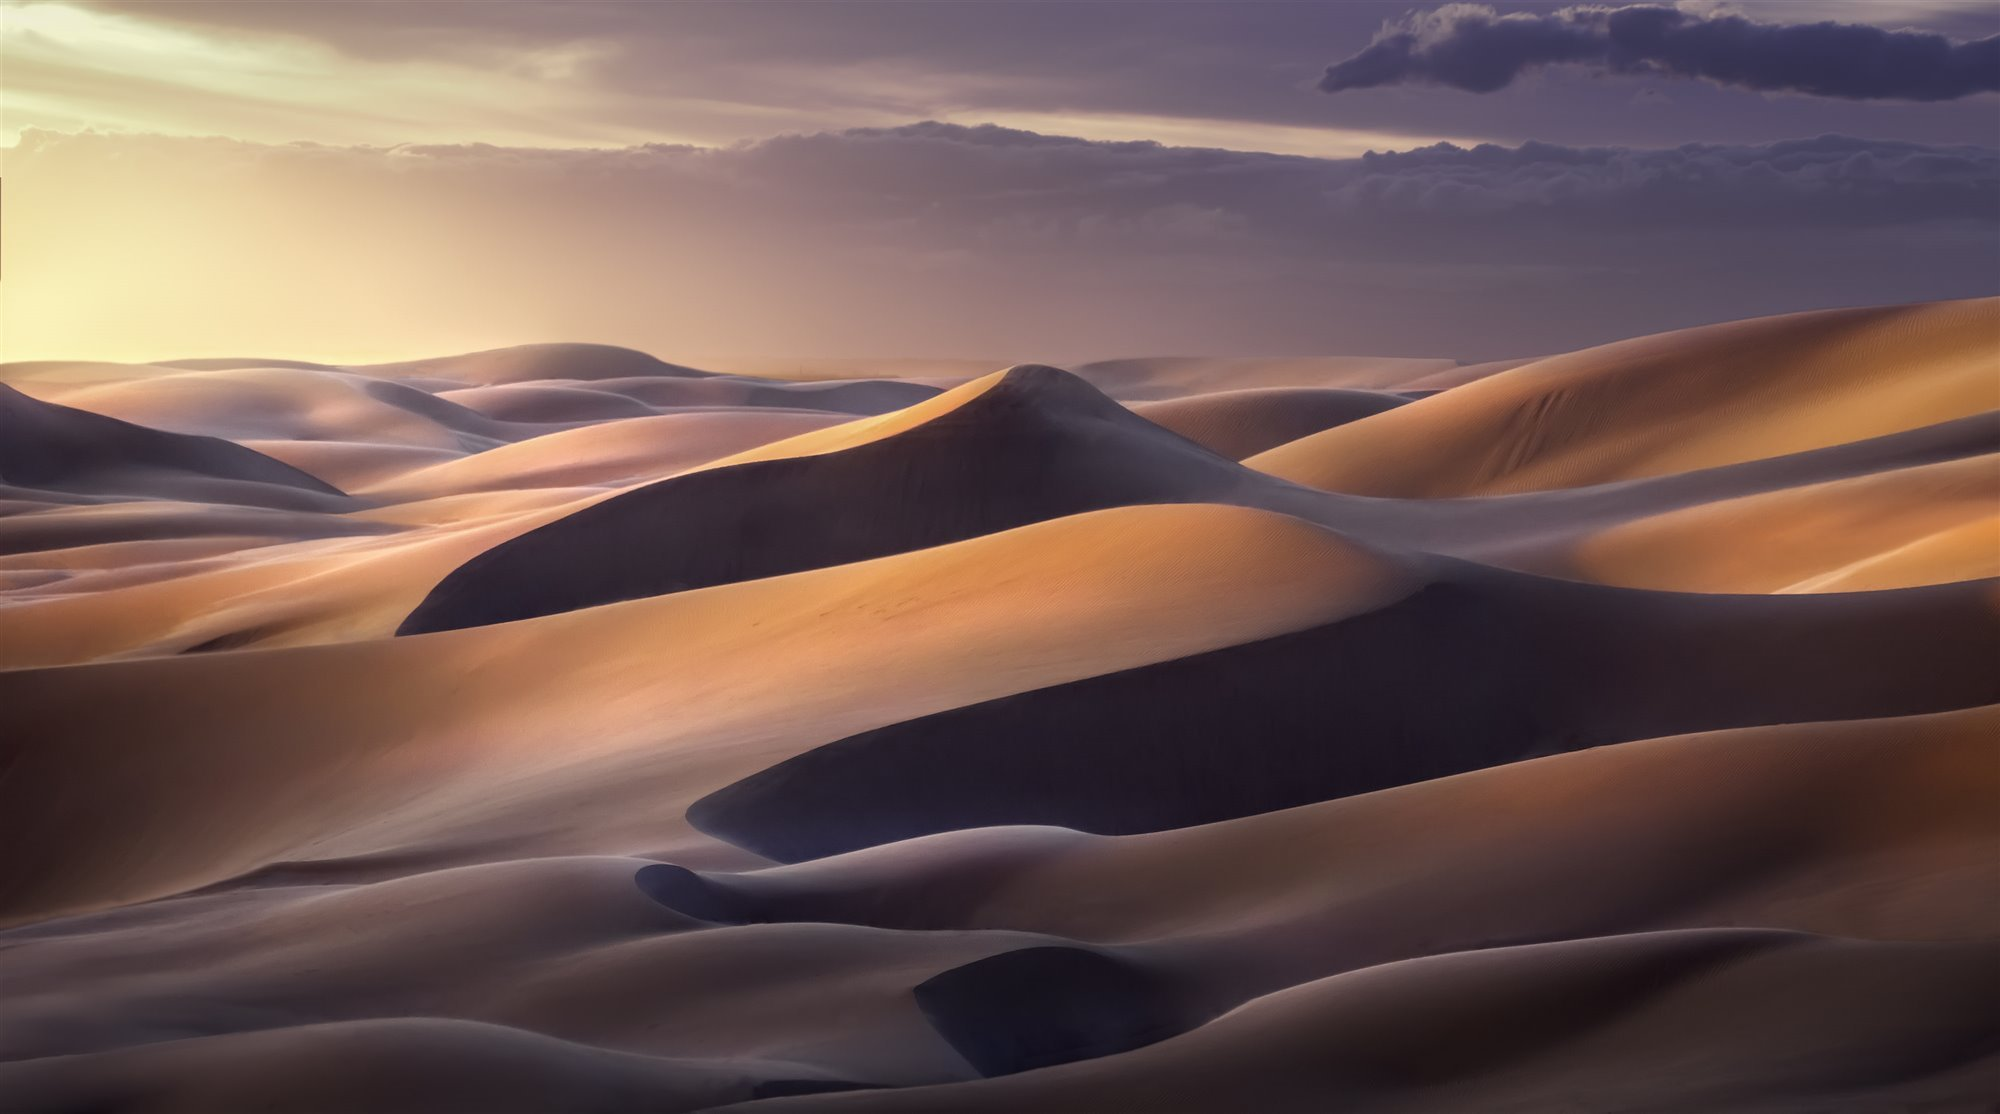 Imperial Dunes, California, USA